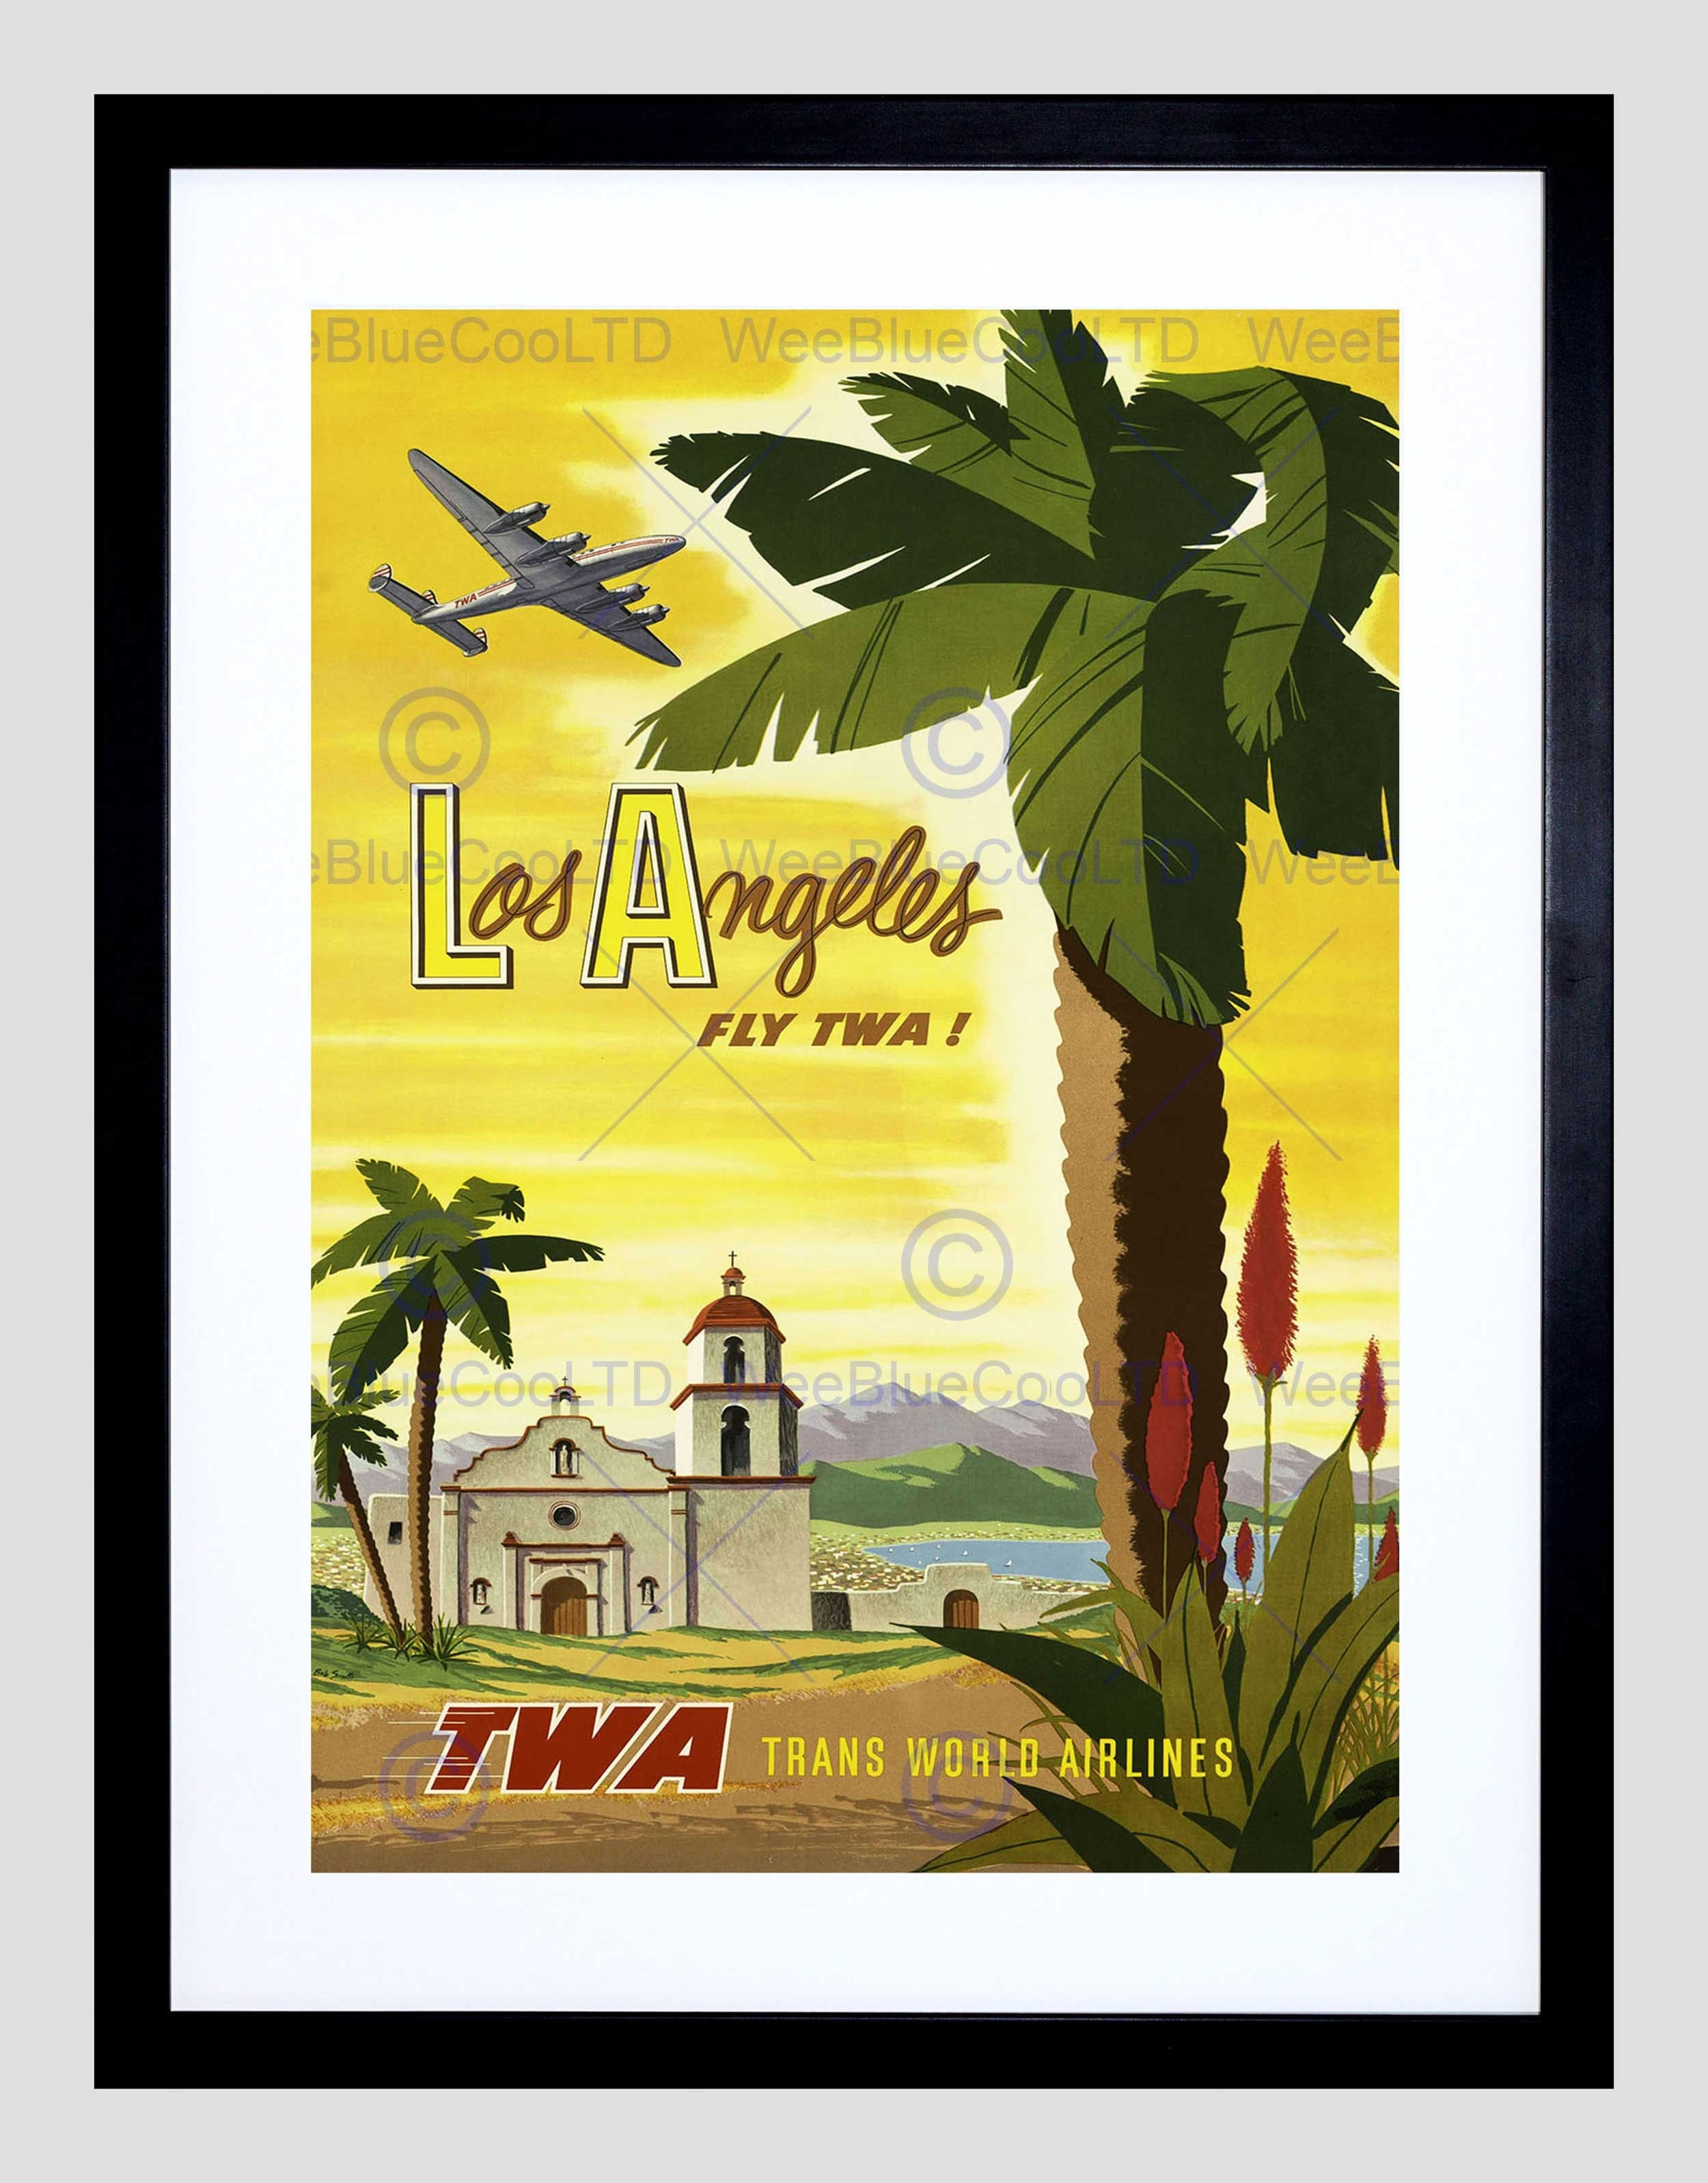 Travel Twa Airline Los Angeles California Palm Vintage Framed Art Pertaining To Most Recent Los Angeles Framed Art Prints (View 5 of 15)